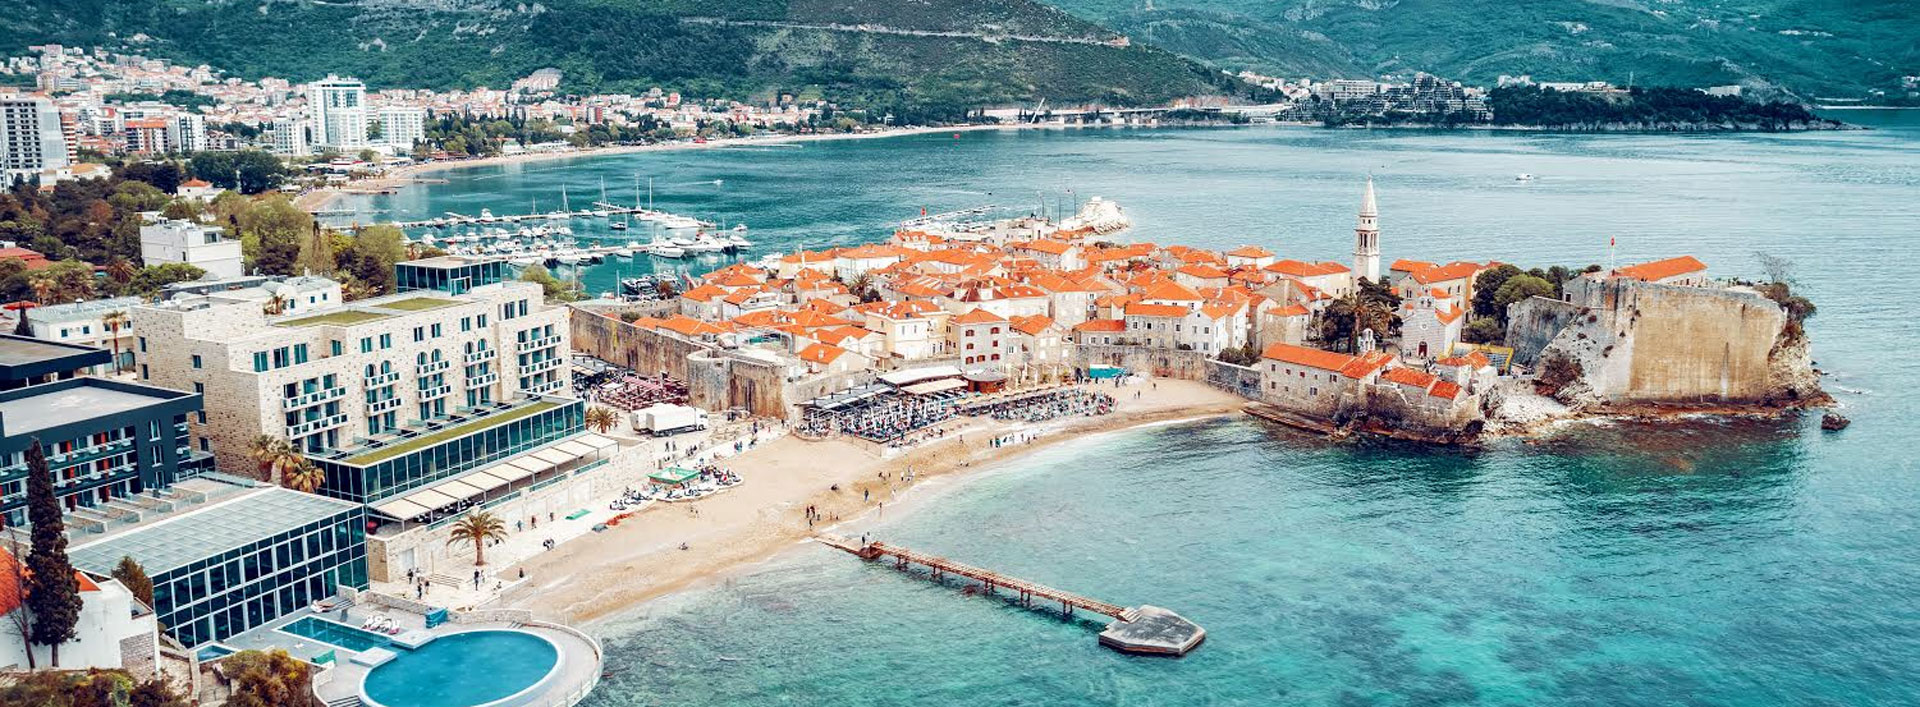 DAY 1. Welcome to Budva - Queen of Montenegro tourism